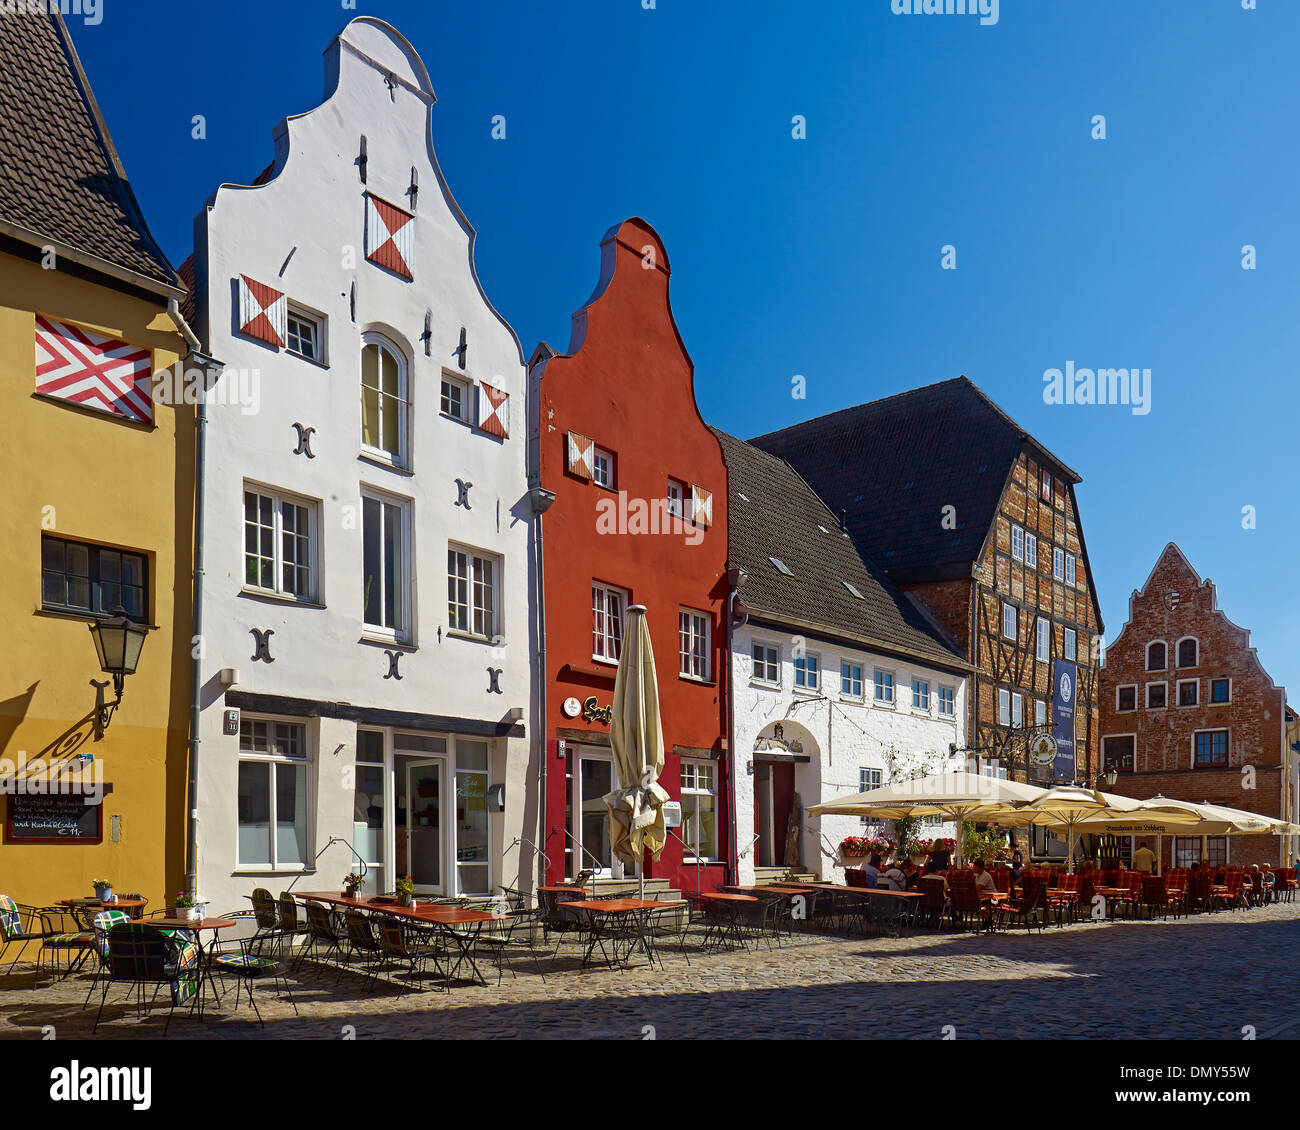 Houses with restaurants at the Lohberg, Hanseatic city of Wismar, Mecklenburg-Vorpommern, Germany - Stock Image